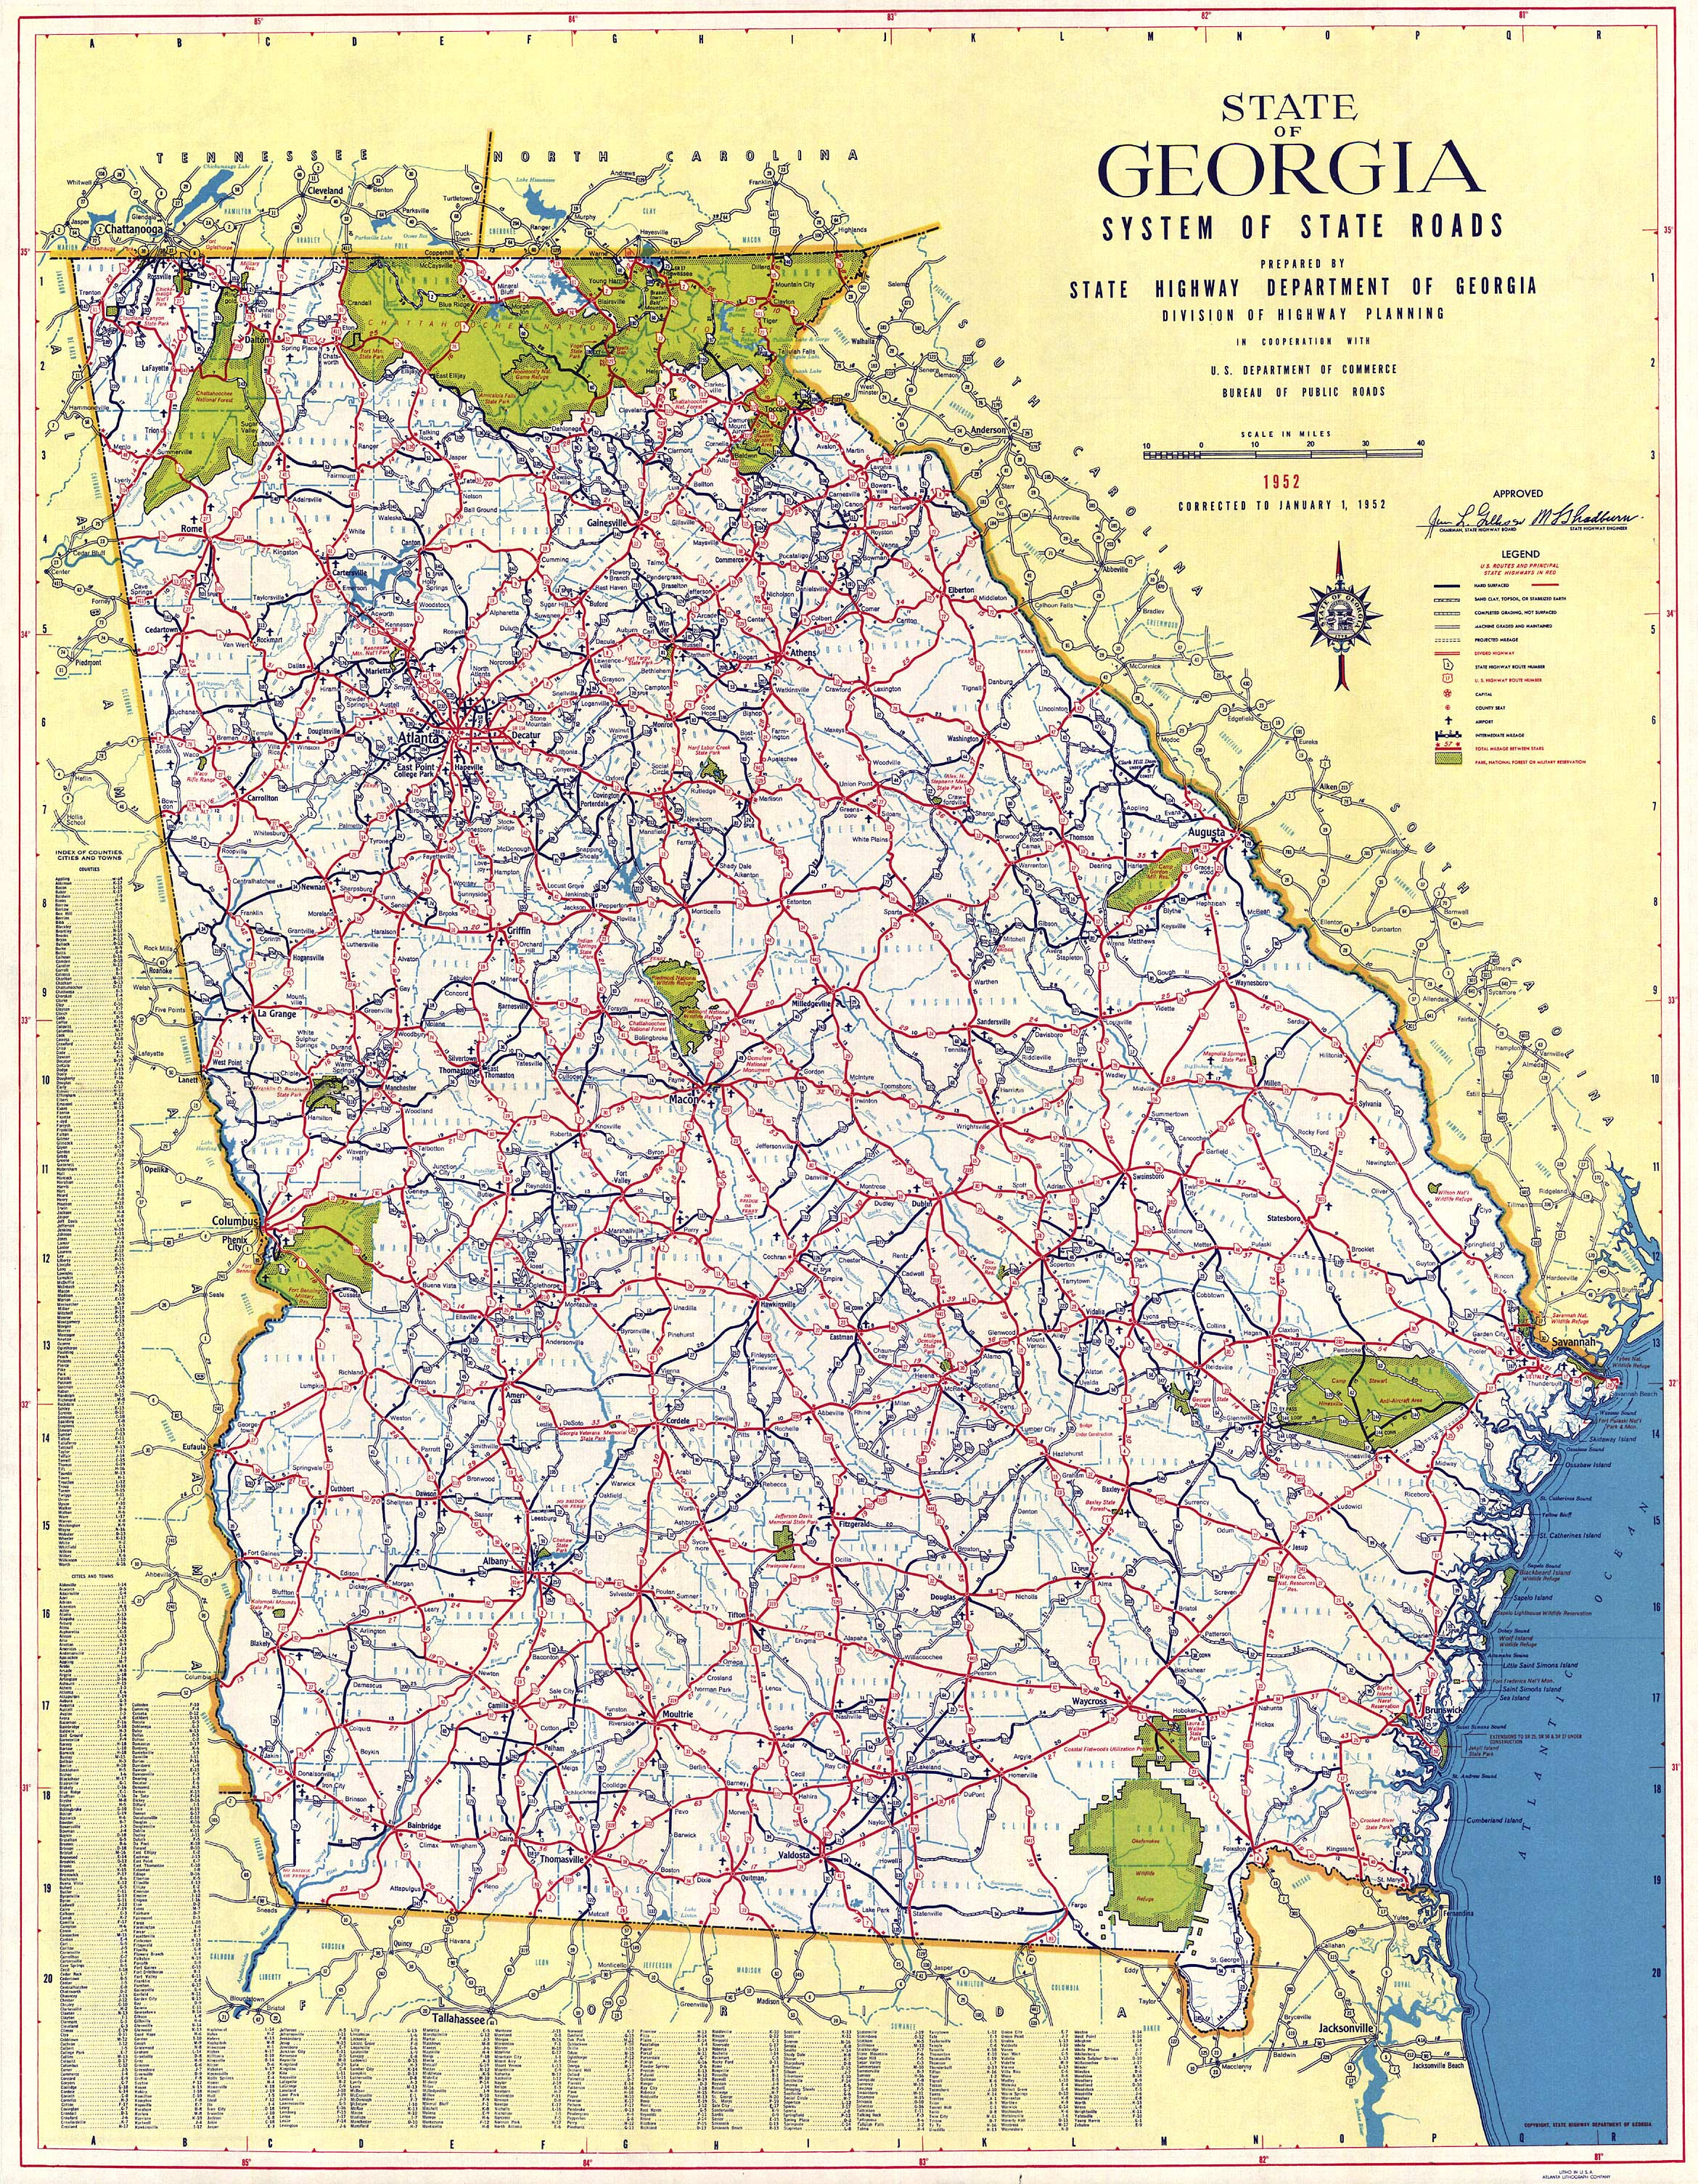 Georgia Road Map Georgia Mappery - Map og georgia